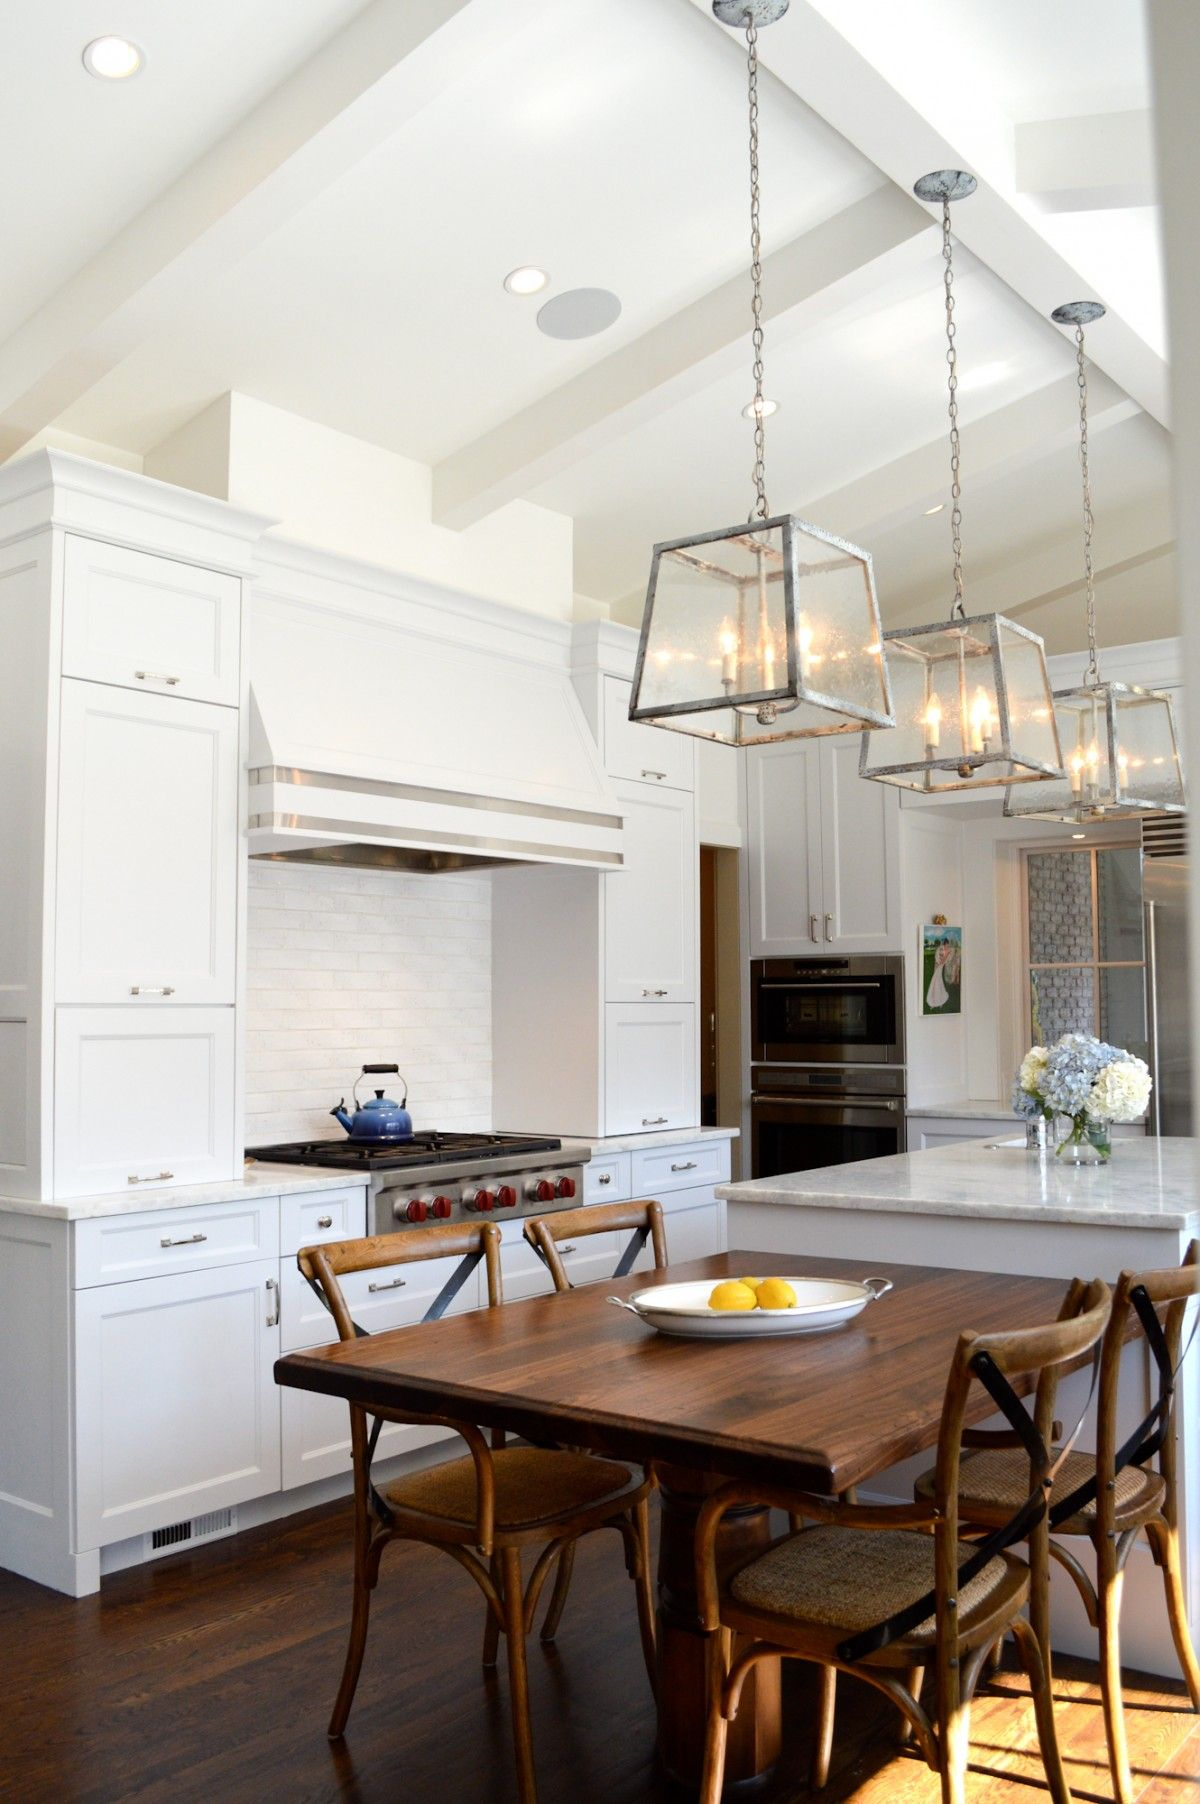 Kitchen With Vaulted Ceilings Cabinetry Integrated Hood Dining Table Off Island High Ceilings